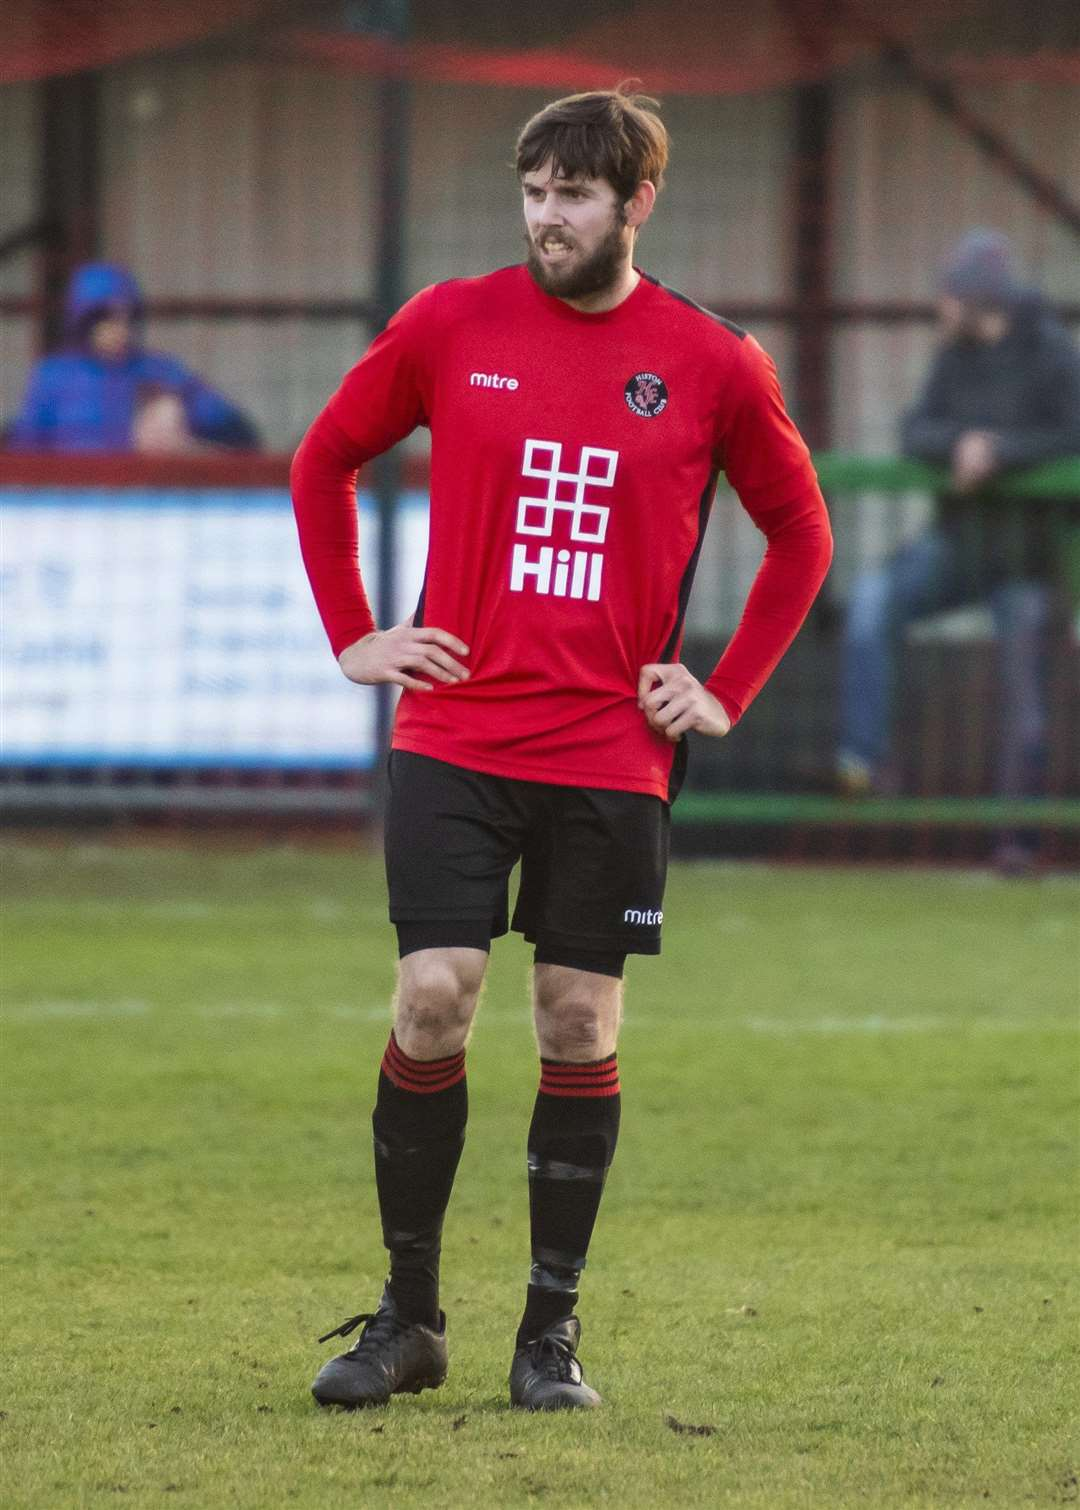 Dan Brown scored twice for Histon against Leverstock Green